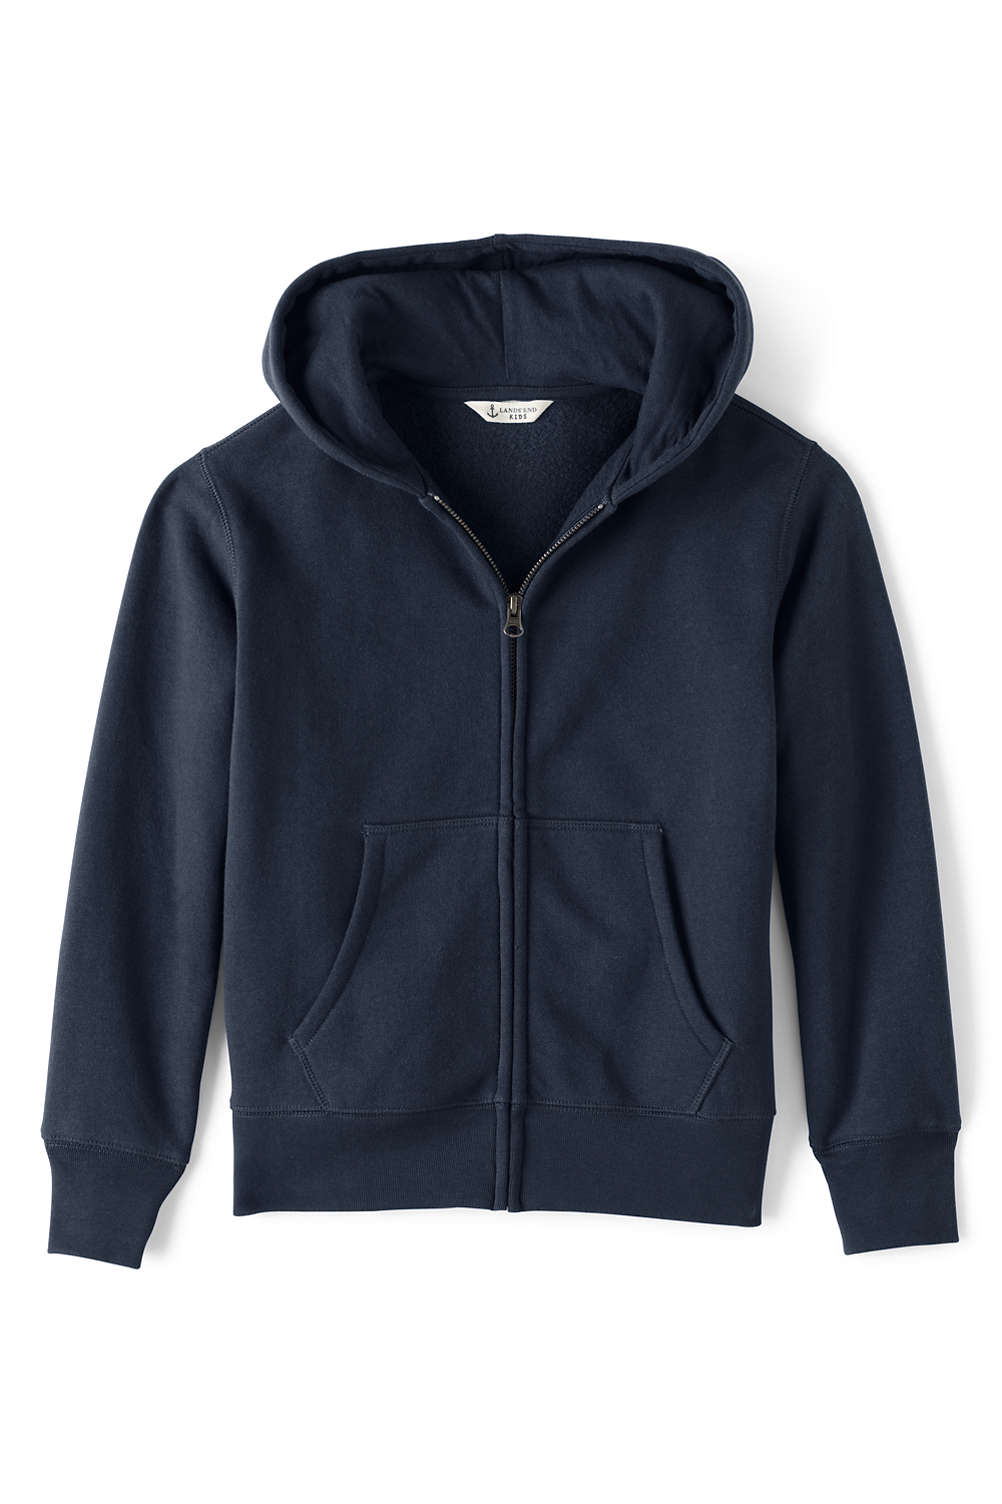 1ad63b94f Boys Zip-front Sweatshirt from Lands' End